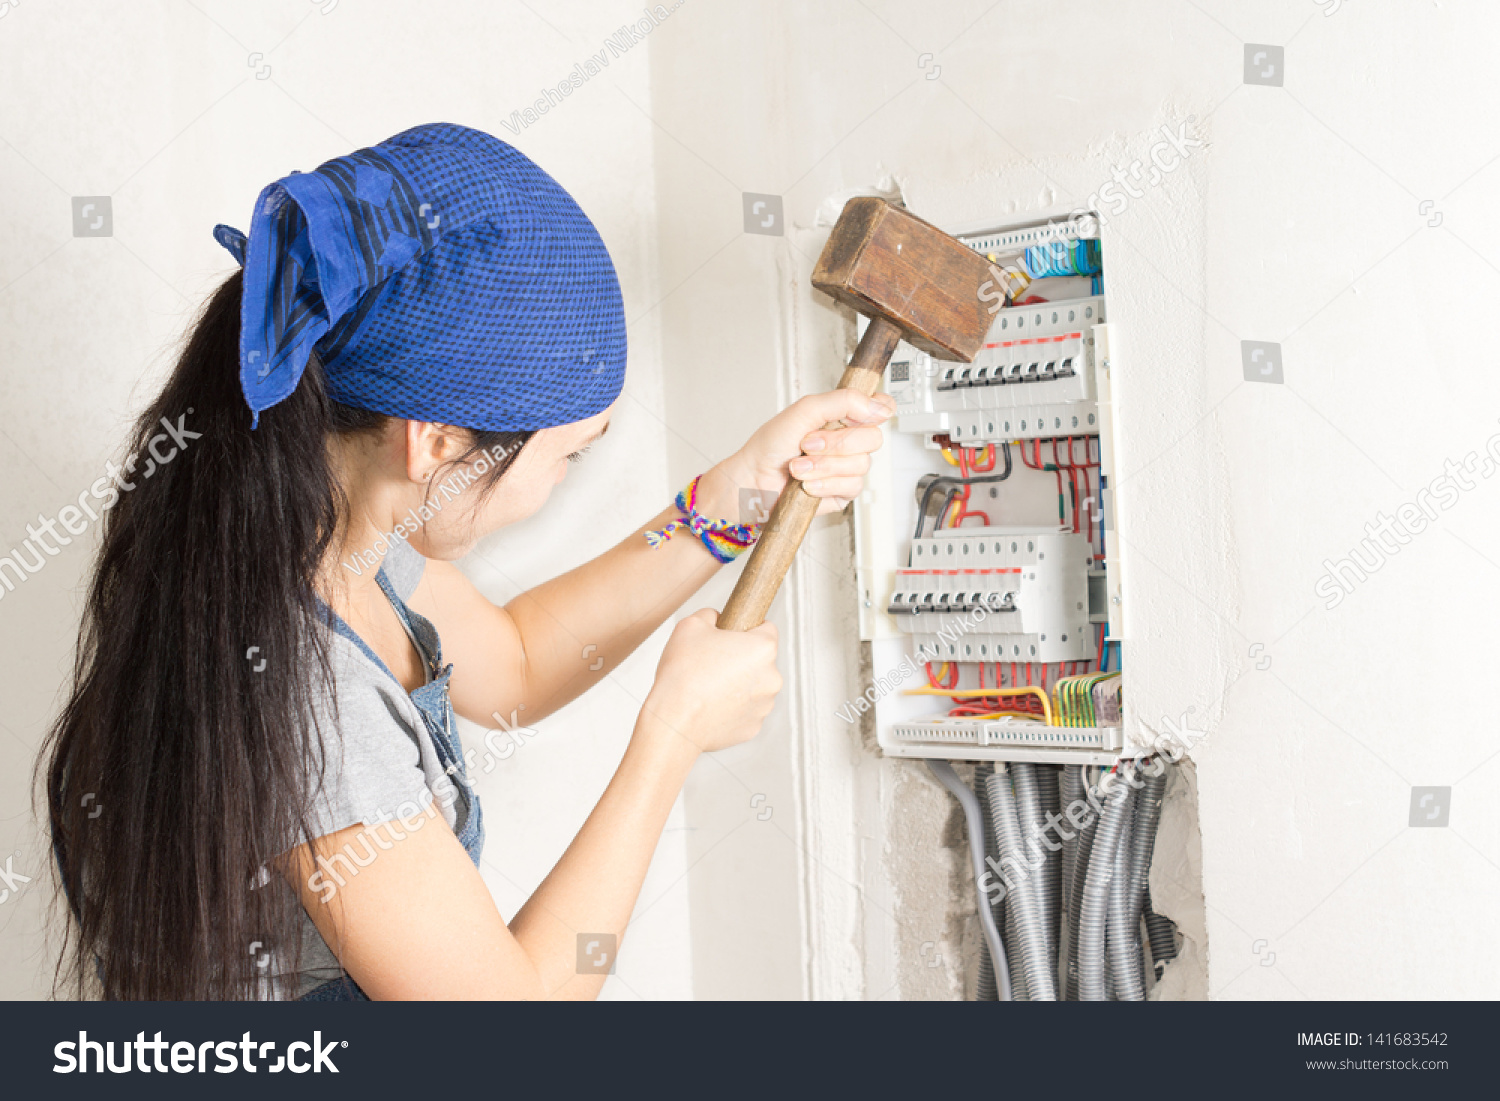 hight resolution of woman taking aim at an electrical fuse box with a large wooden mallet in an effort